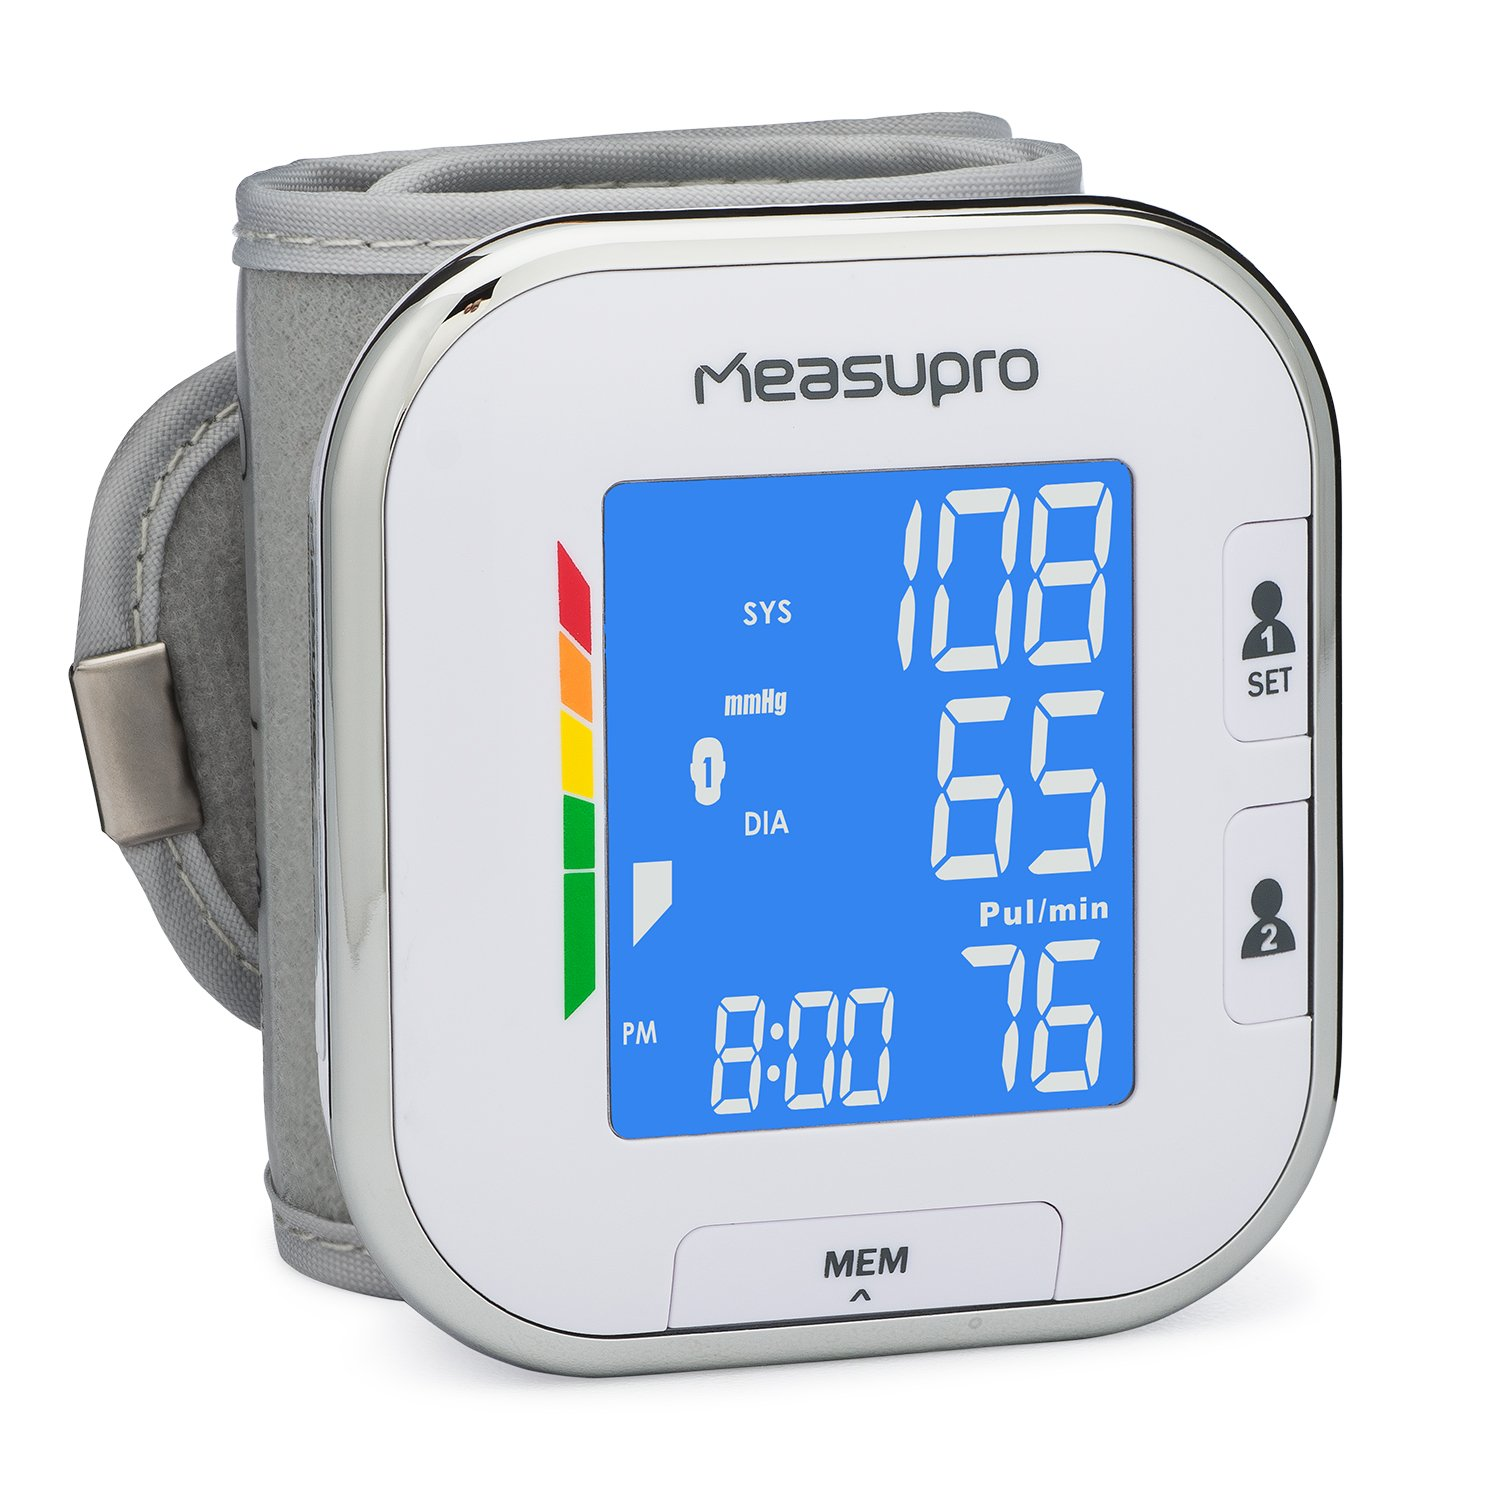 MeasuPro Portable Automatic Wrist Blood Pressure Monitor with Heart Rate Meter, Hypertension Color Alert Display, Two User Modes, IHB Indicator and Memory Recall